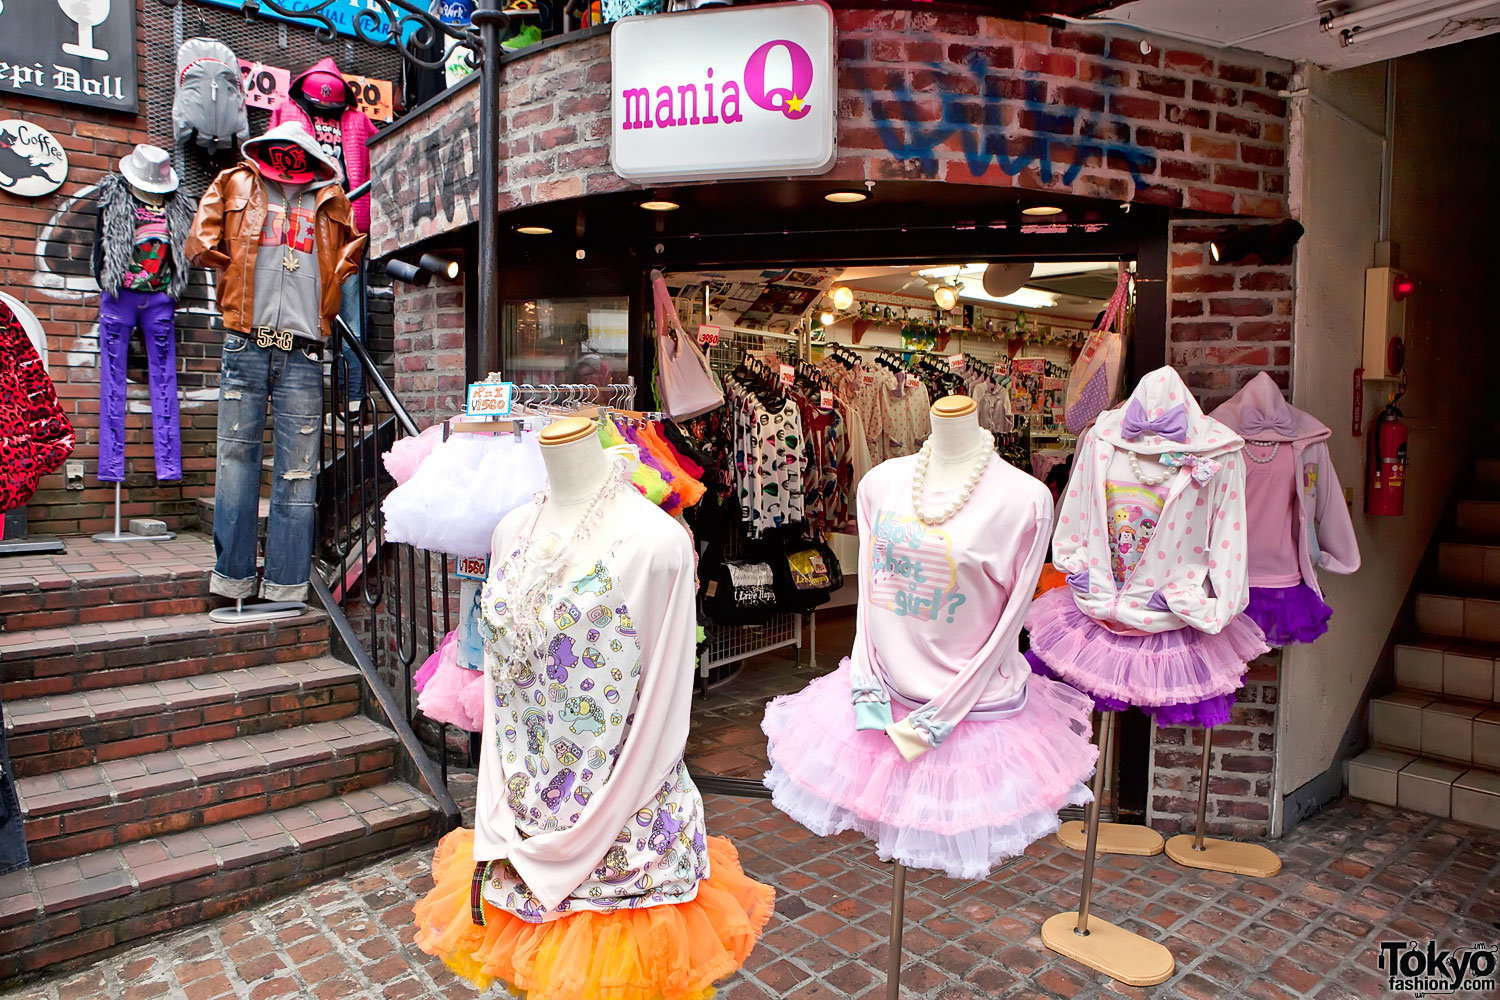 Fairy Kei Brand ManiaQ Closes Harajuku Store After 15 Years d2cadf43d9f0